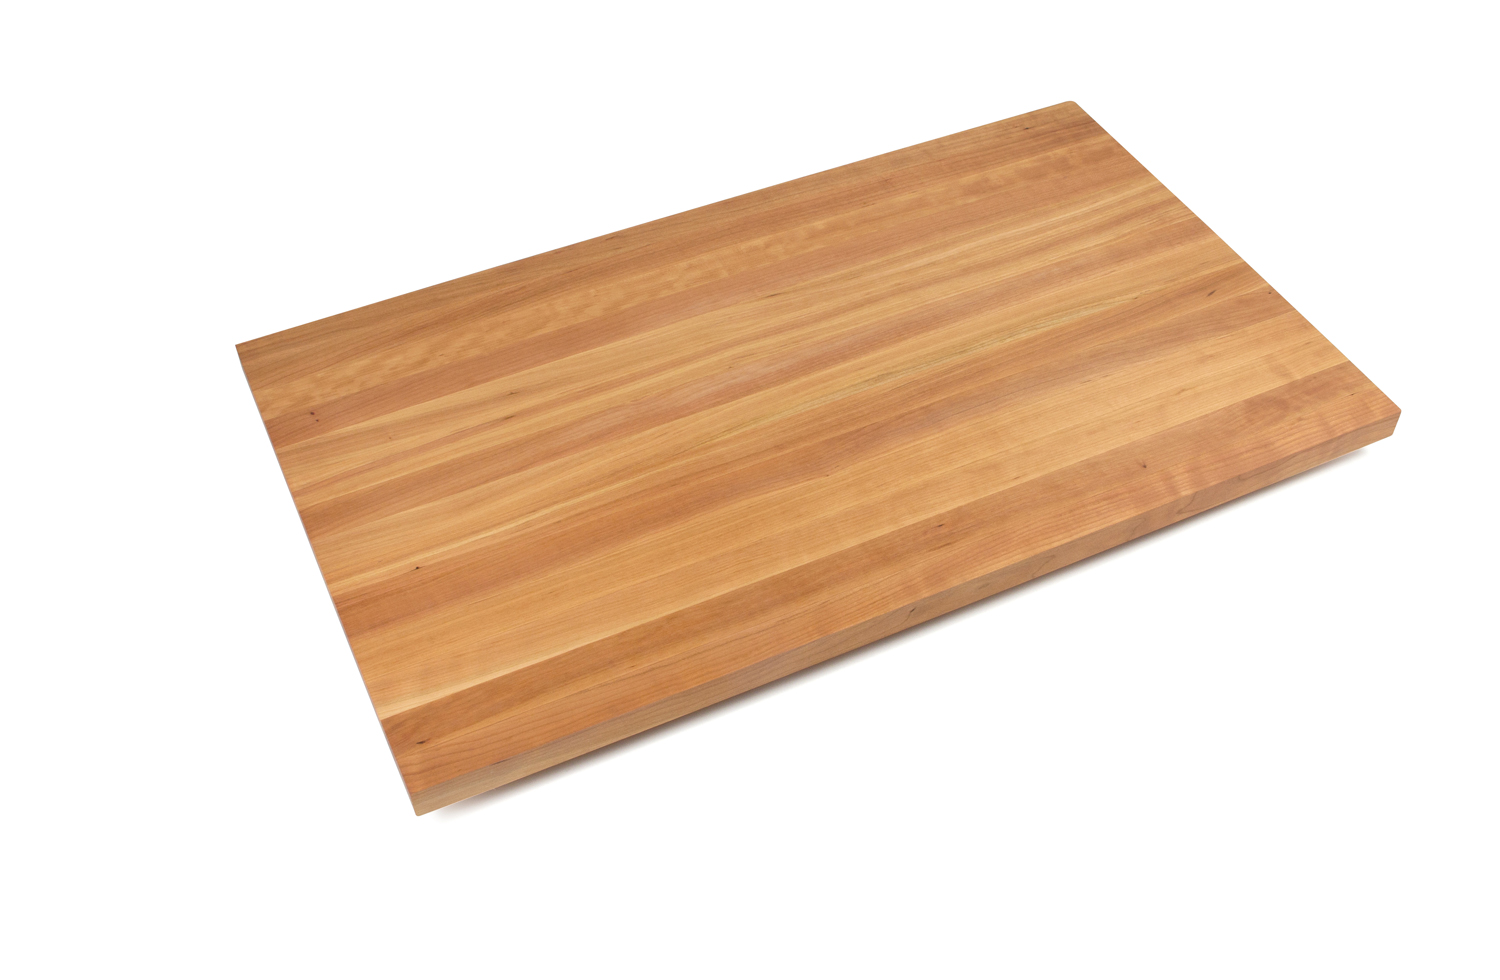 2.25 in. thick cherry edge grain countertops 38